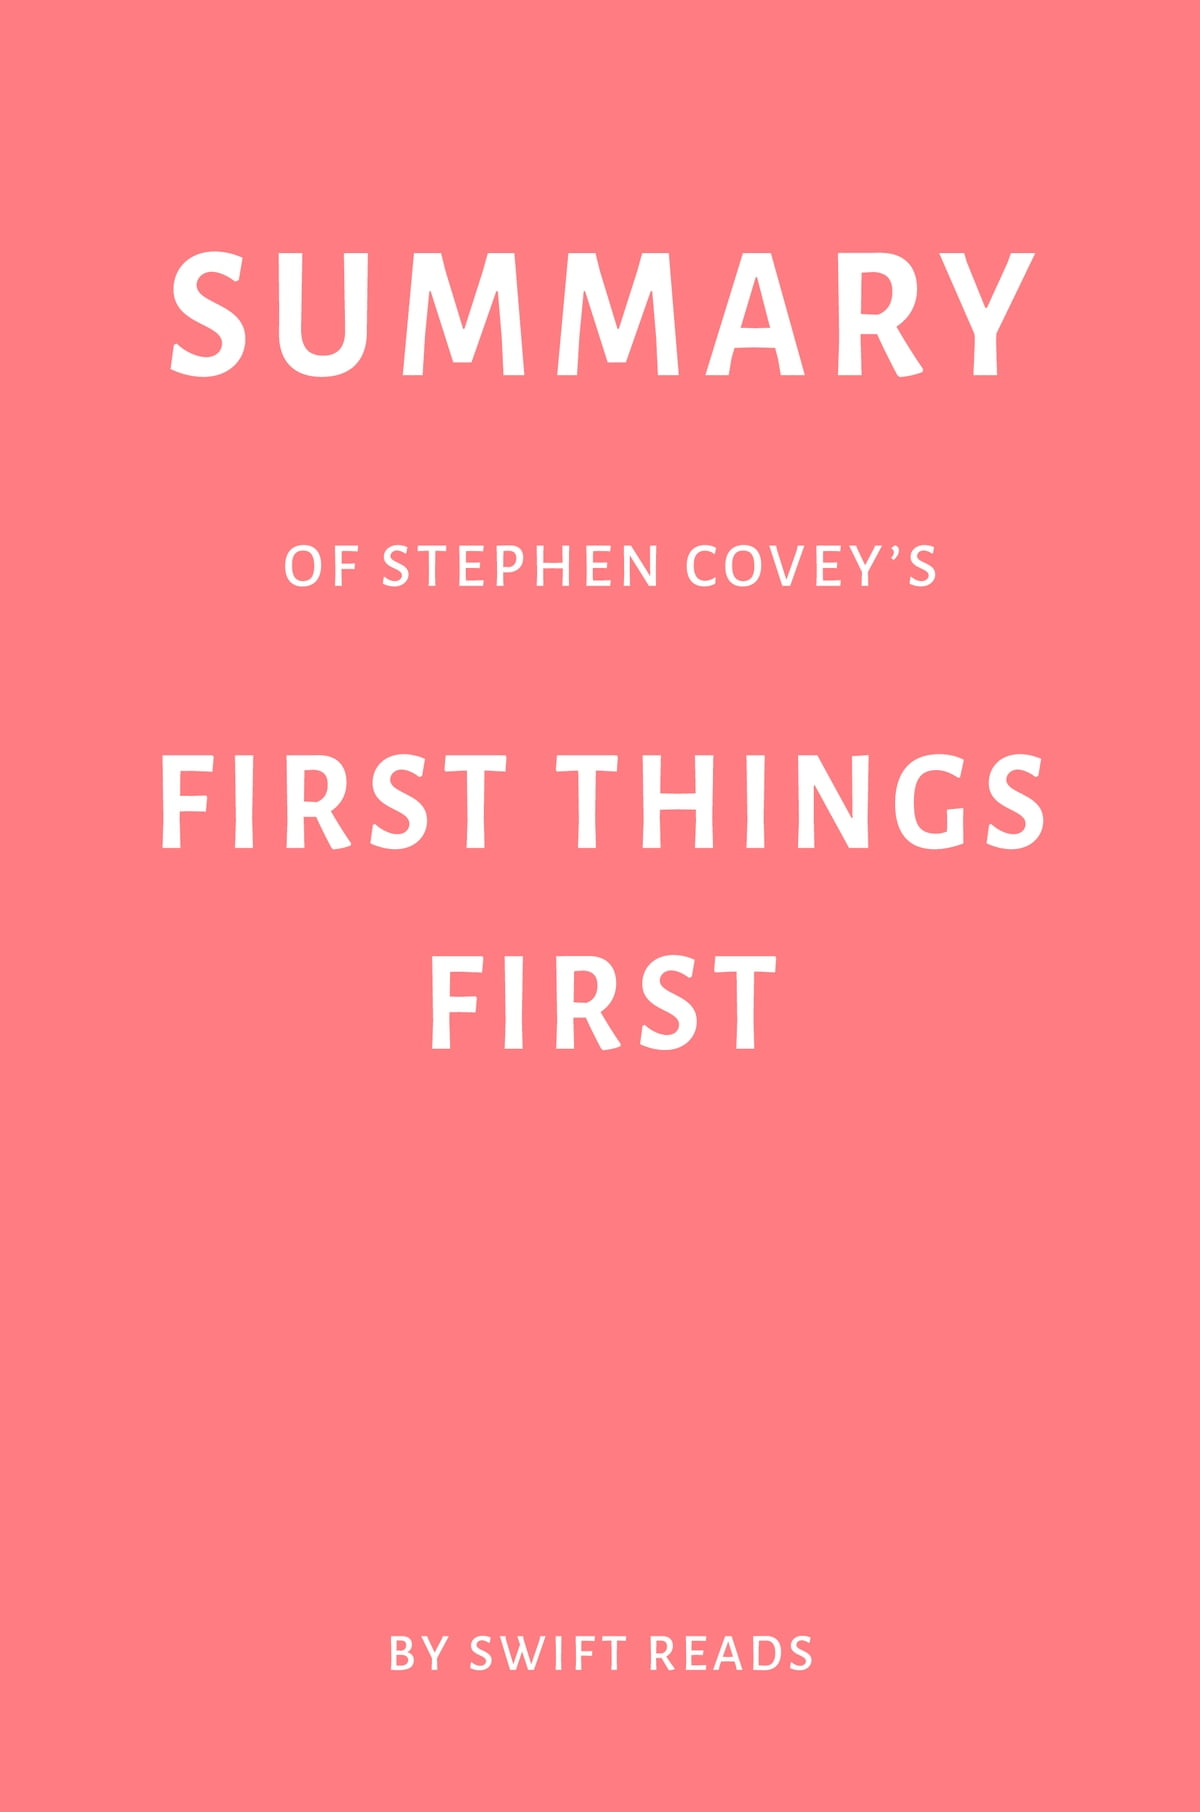 Summary Of Stephen Covey S First Things First By Swift